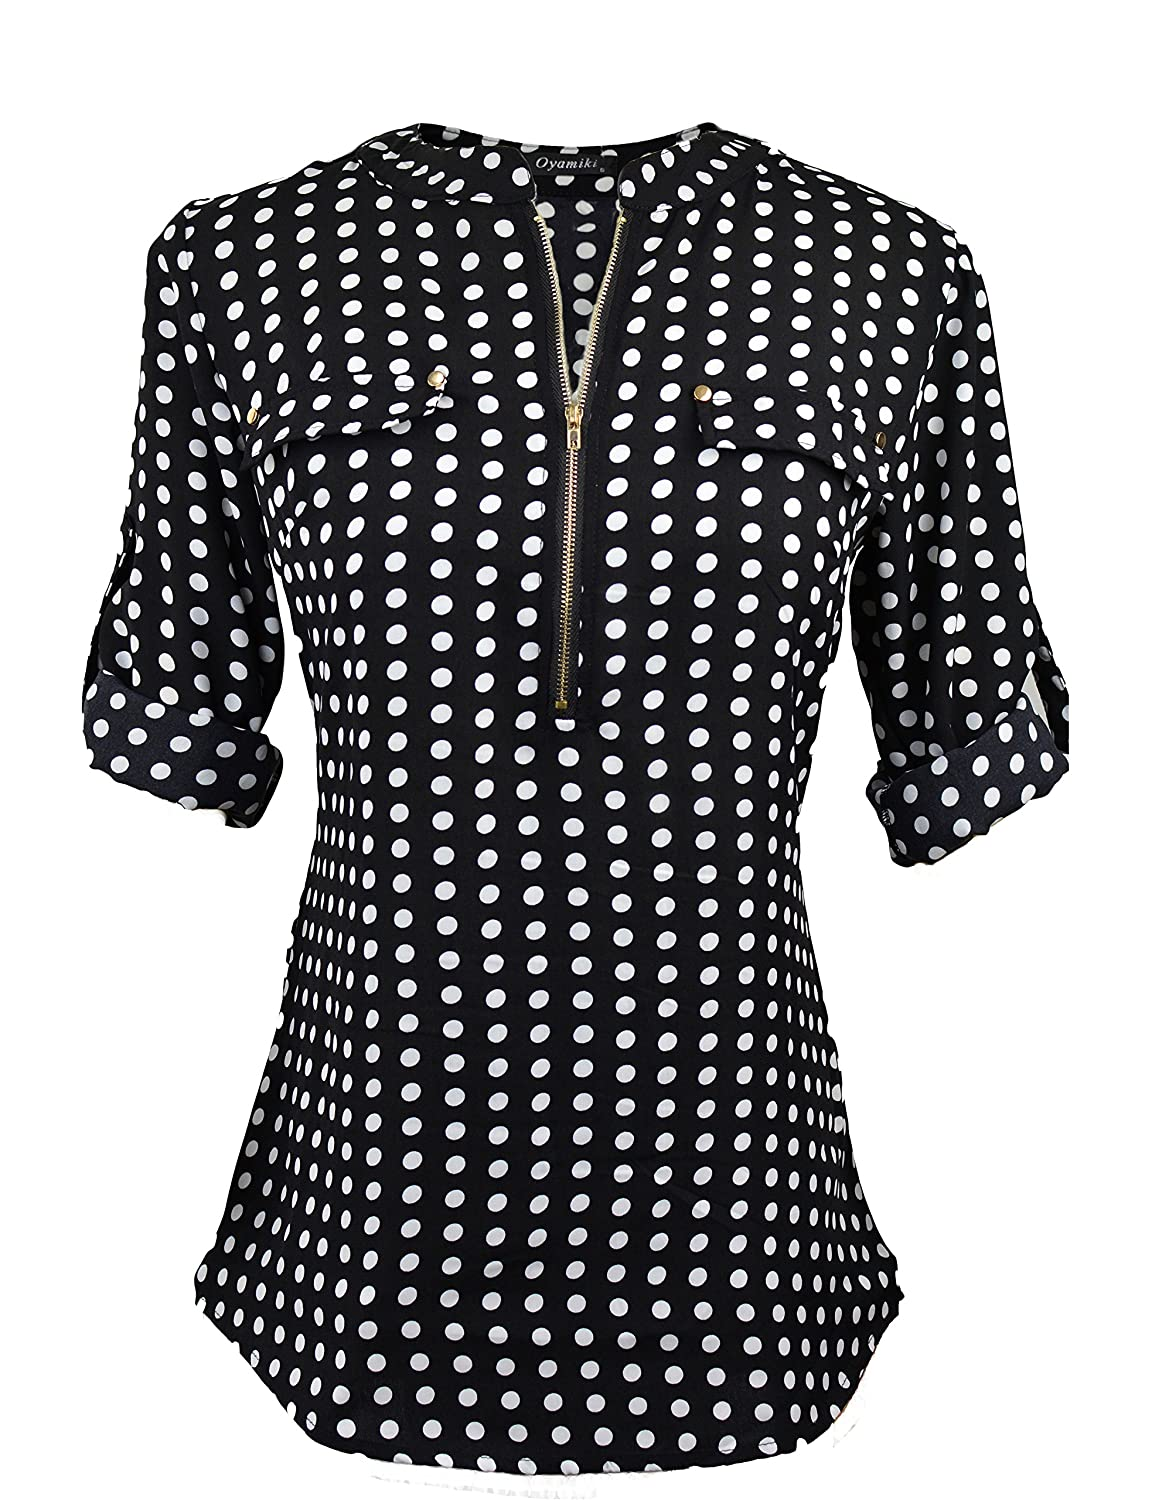 3d4db0a18a Ladies Chiffon Blouse Tops features: Zip Up V Neck, Long Sleeve, Rounded  Hemline, Polka Dot/ Floral Printing.